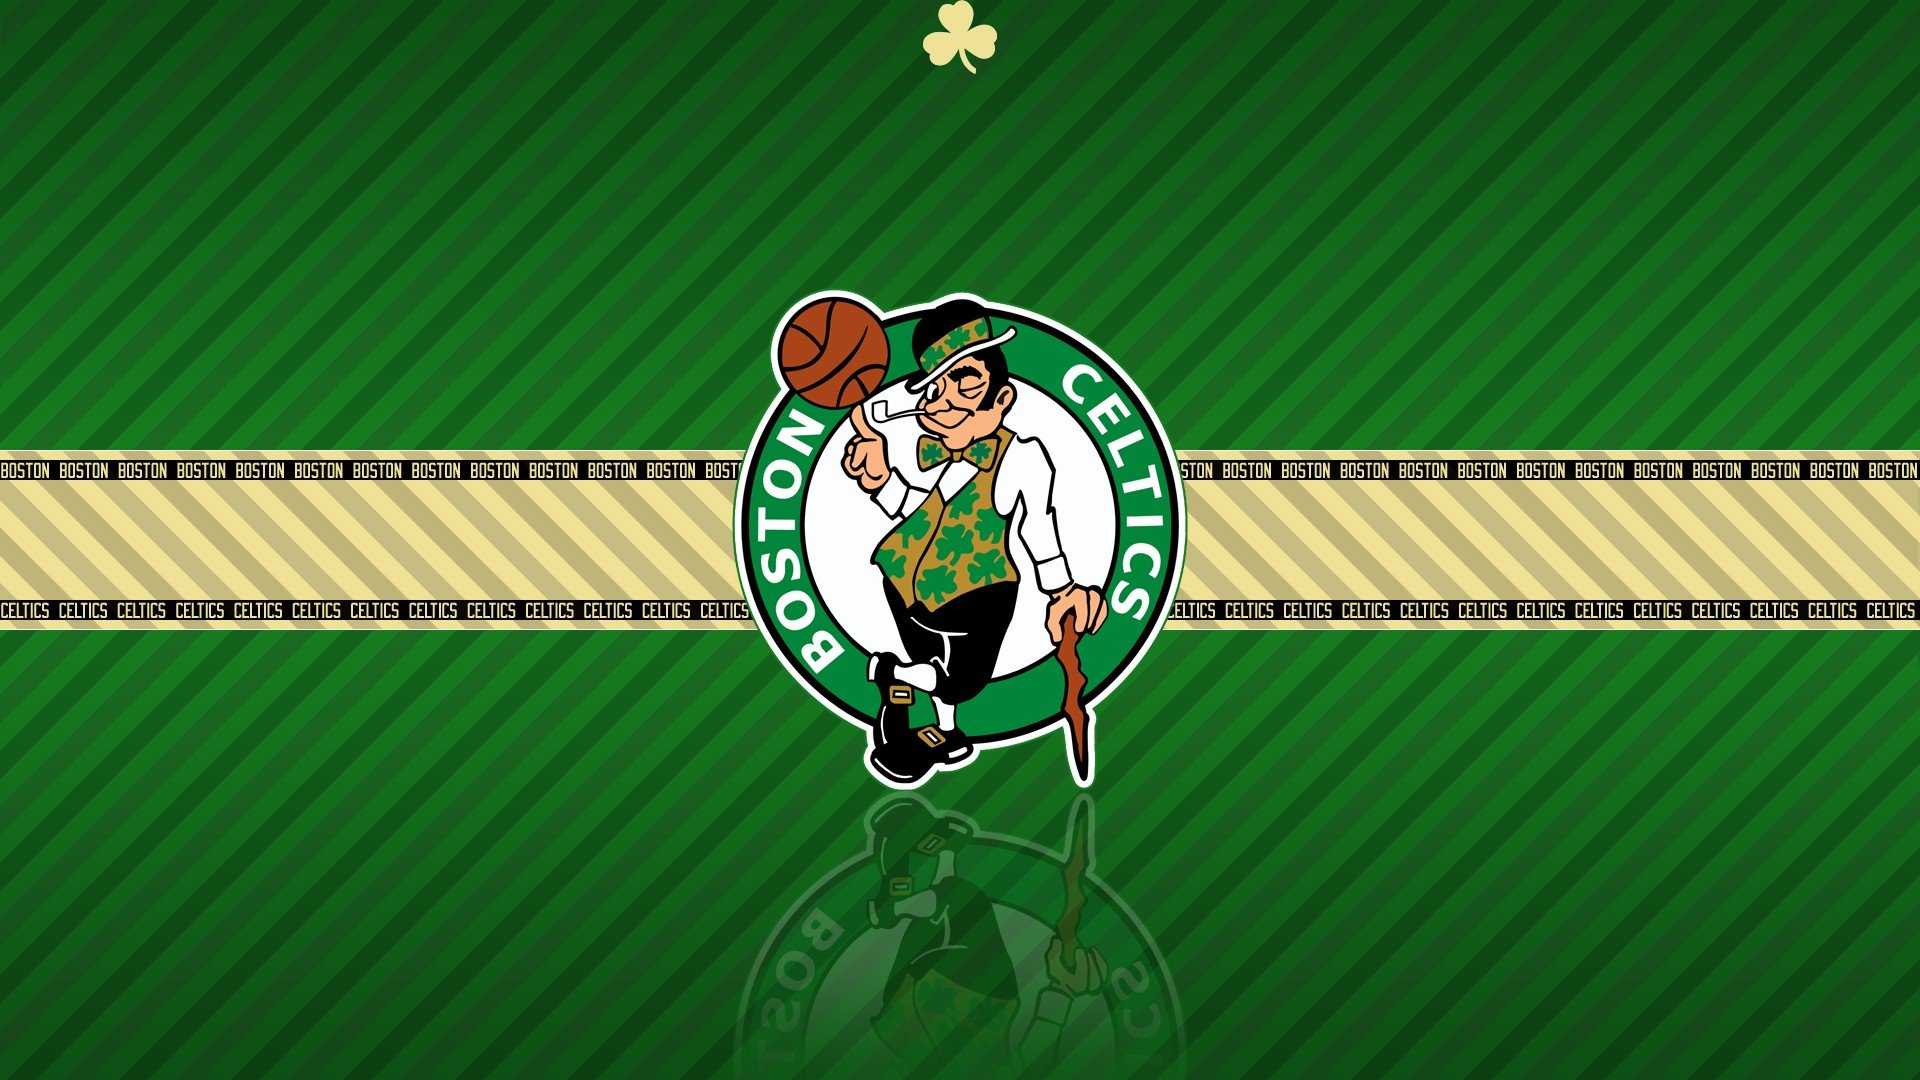 rajon rondo iphone 5 wallpaper